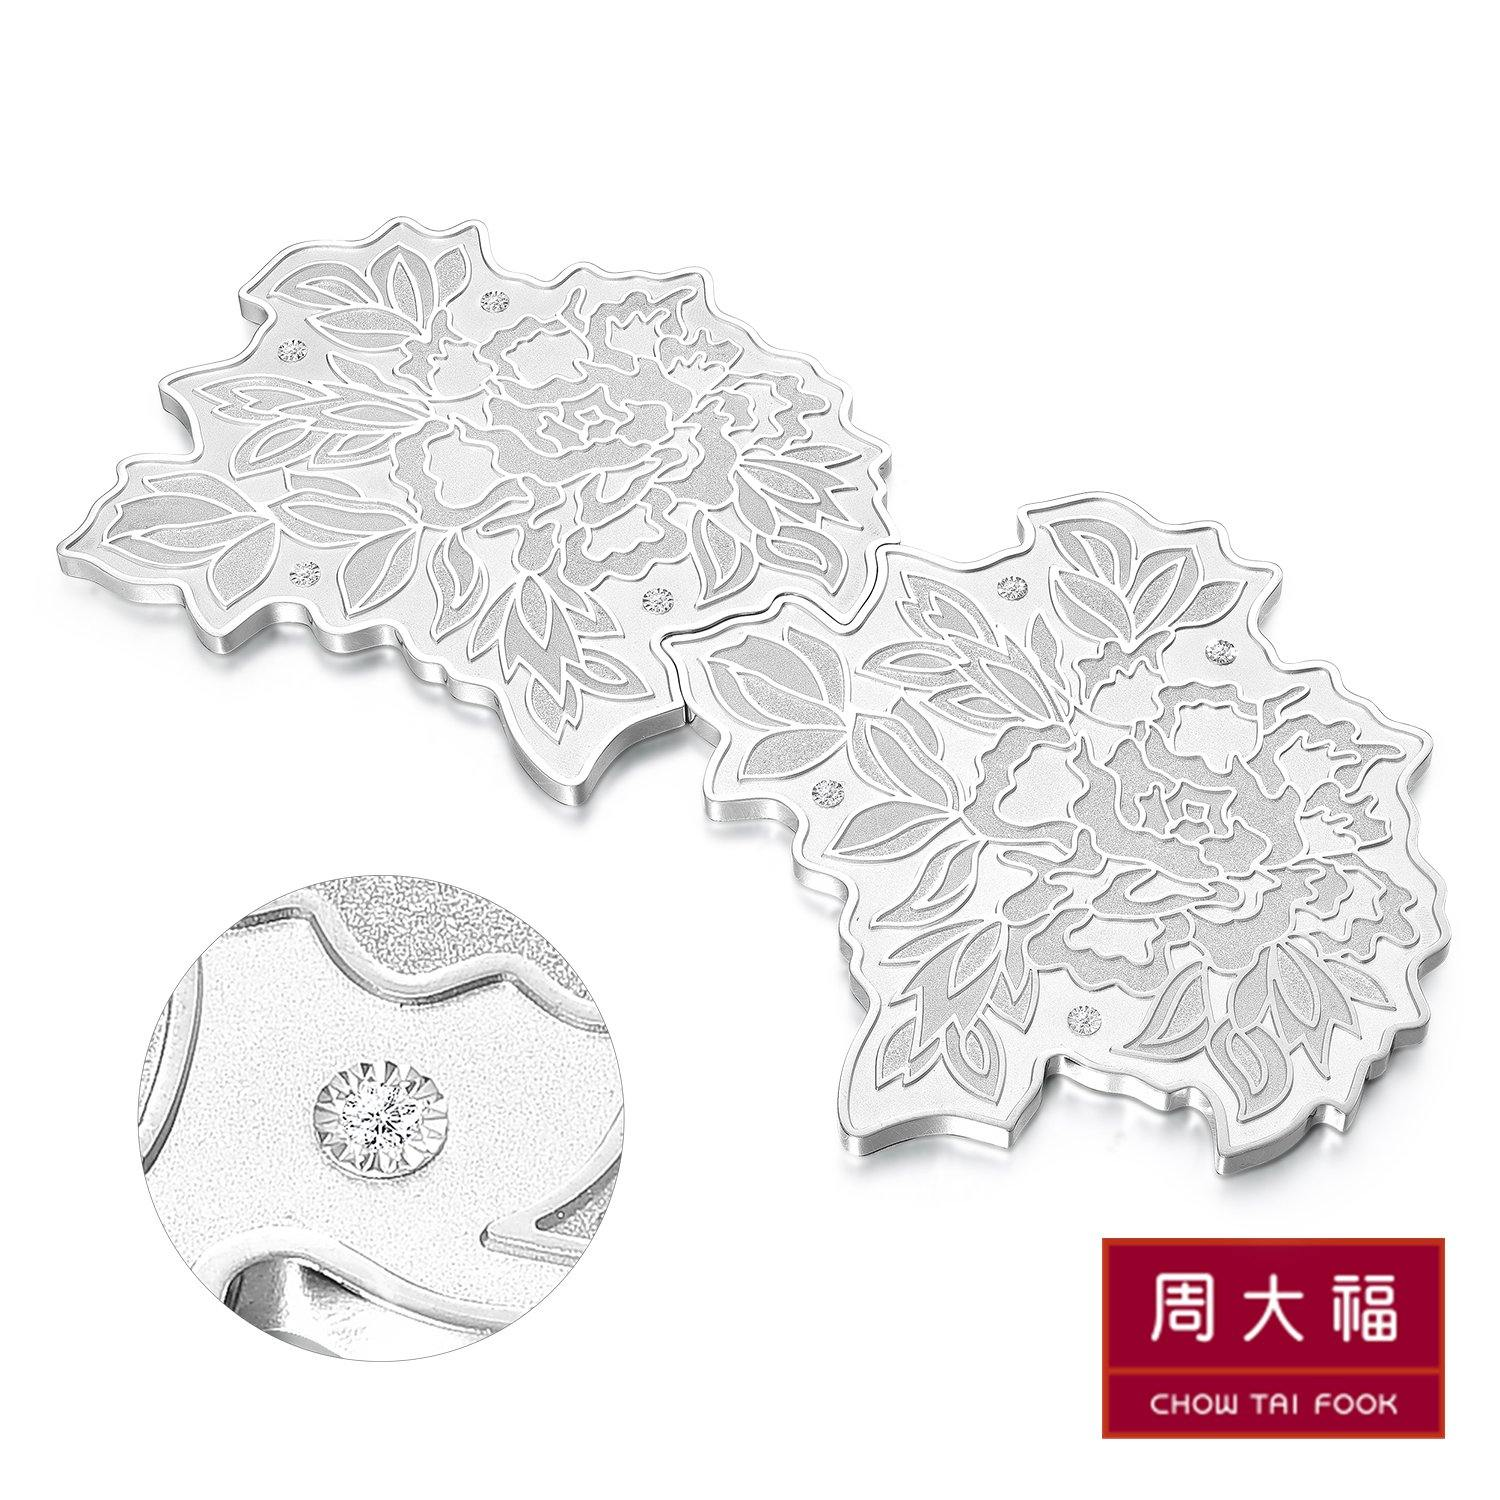 【PEONY】Diamond & 925 Sterling Silver 2 Become 1 Coaster Set